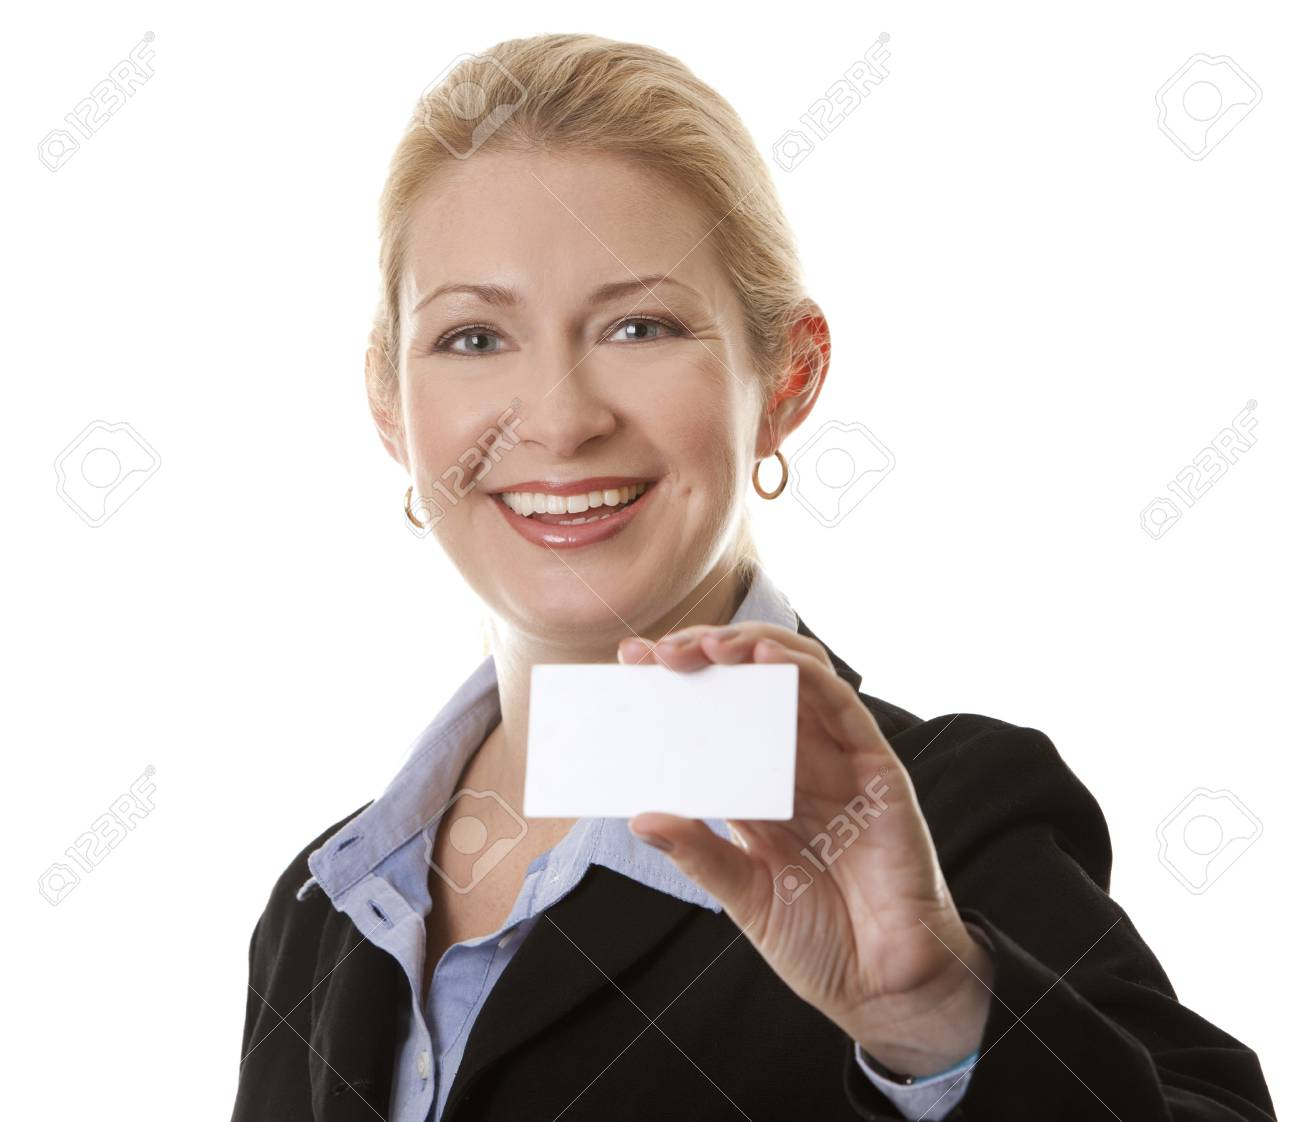 business woman in her 40s holding business card Stock Photo - 15870028